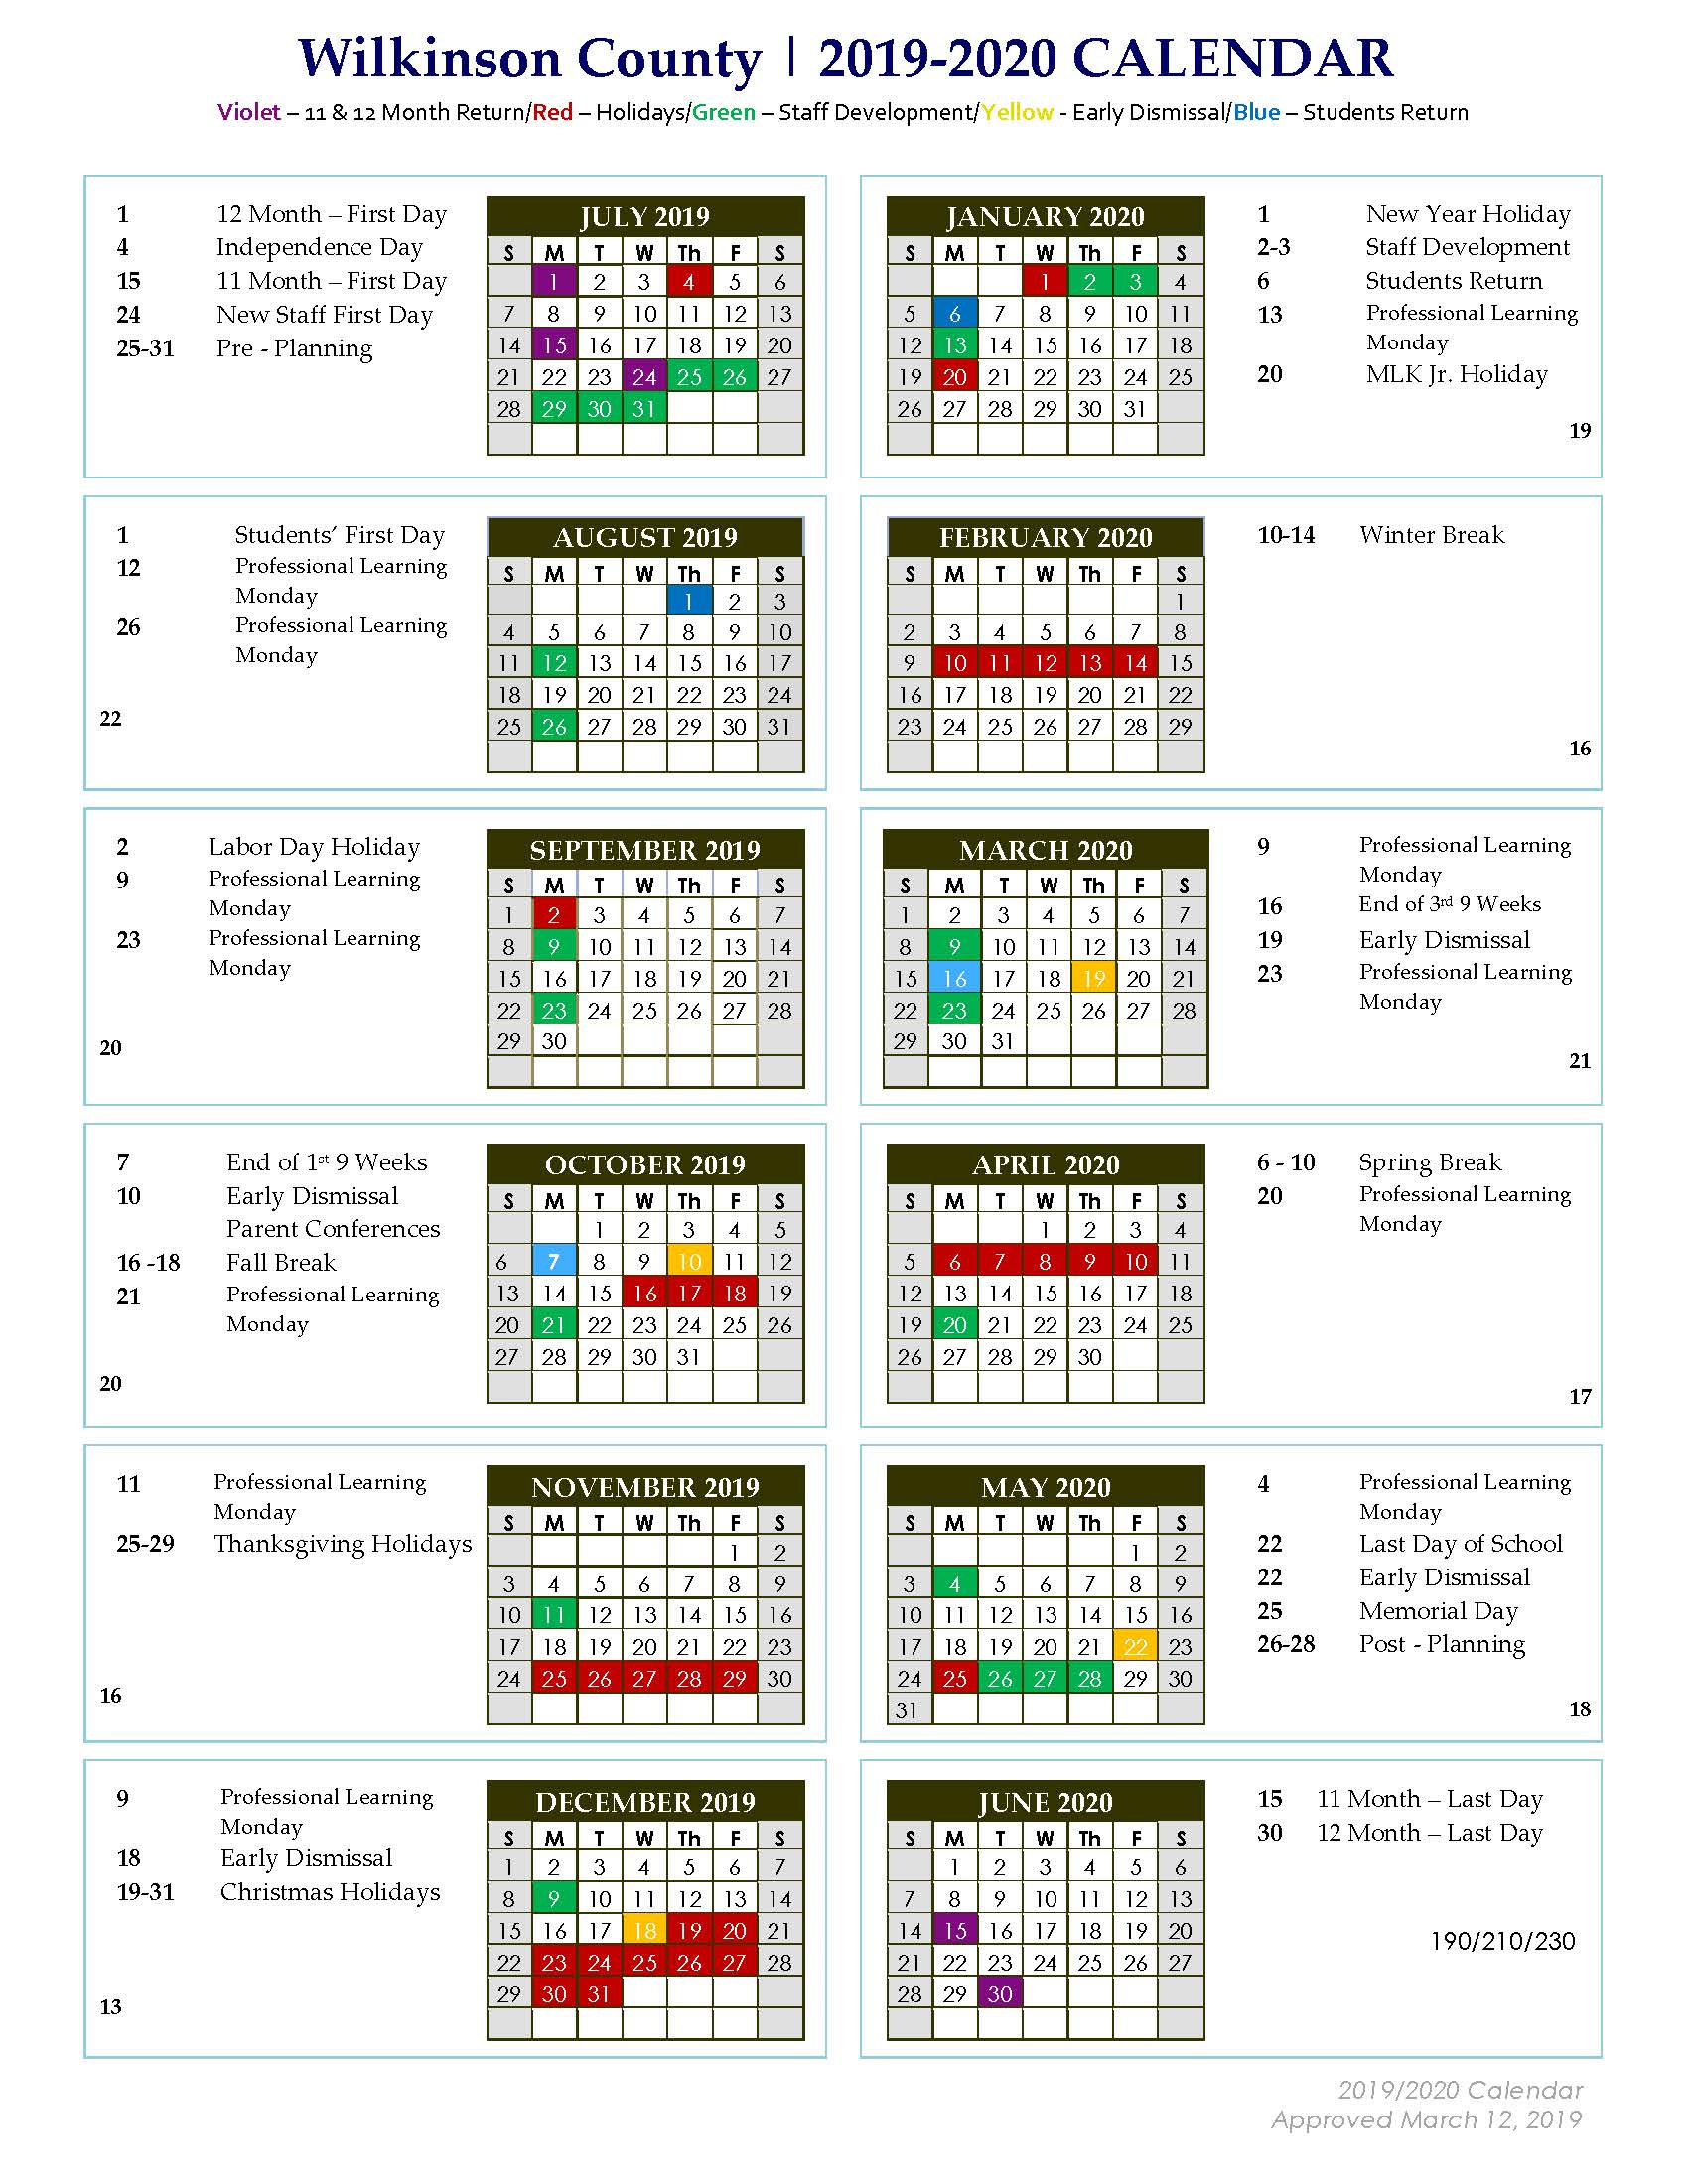 Wilkinson County Middle: 2019 - 2020 Approved District Calendar Within Doe School Calnder 2015 2020